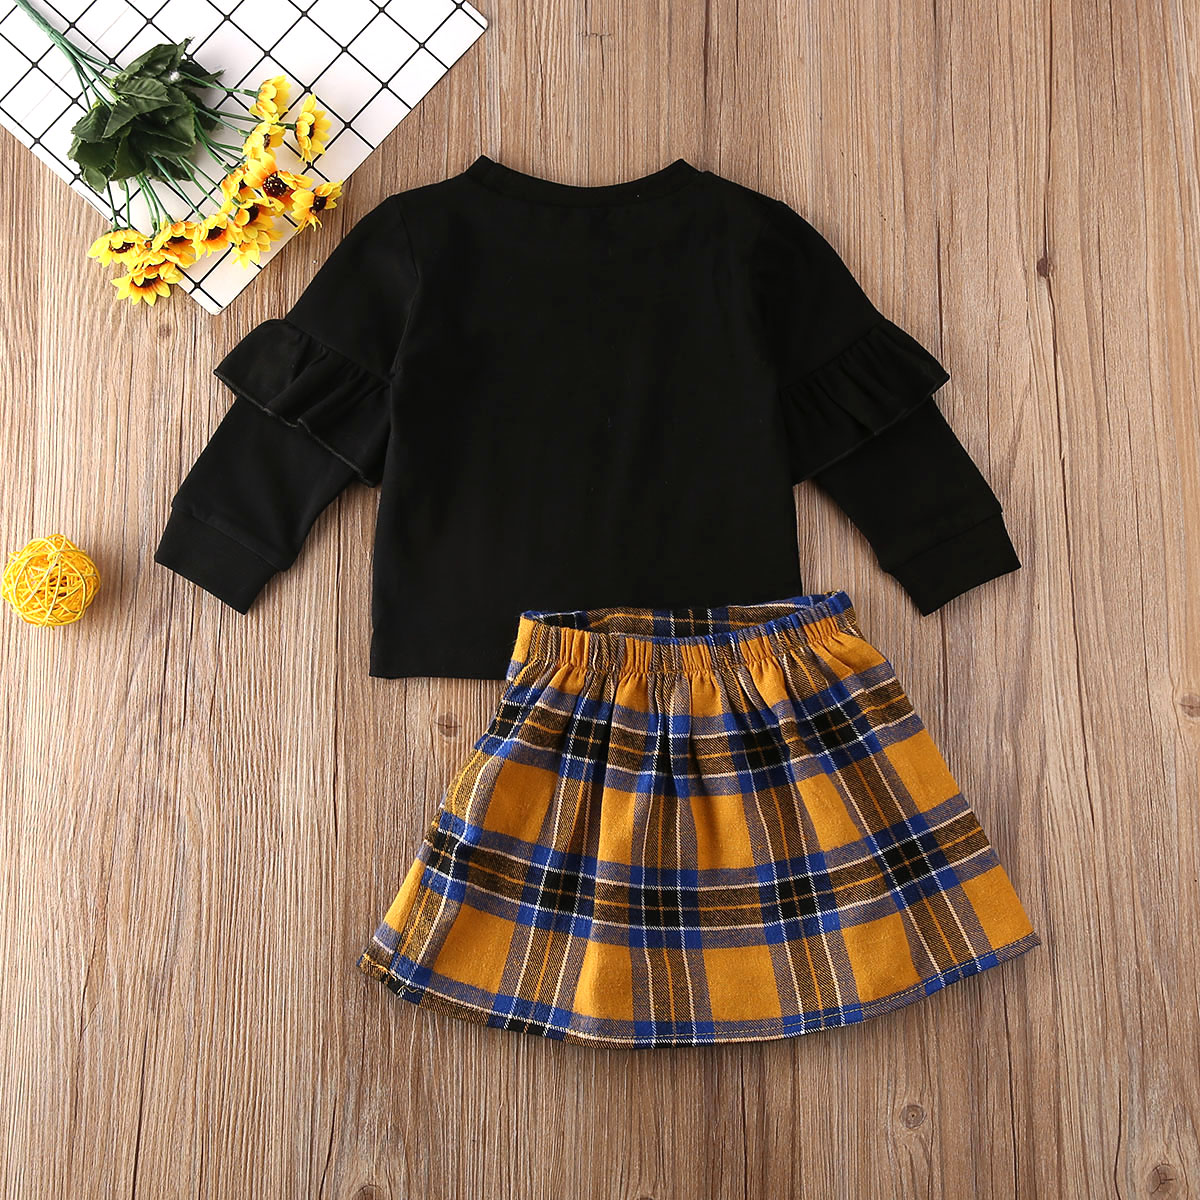 2pcs Toddler Baby Girl Korean Long Sleeve Tops+Skirt Outfits Set Clothes Newest